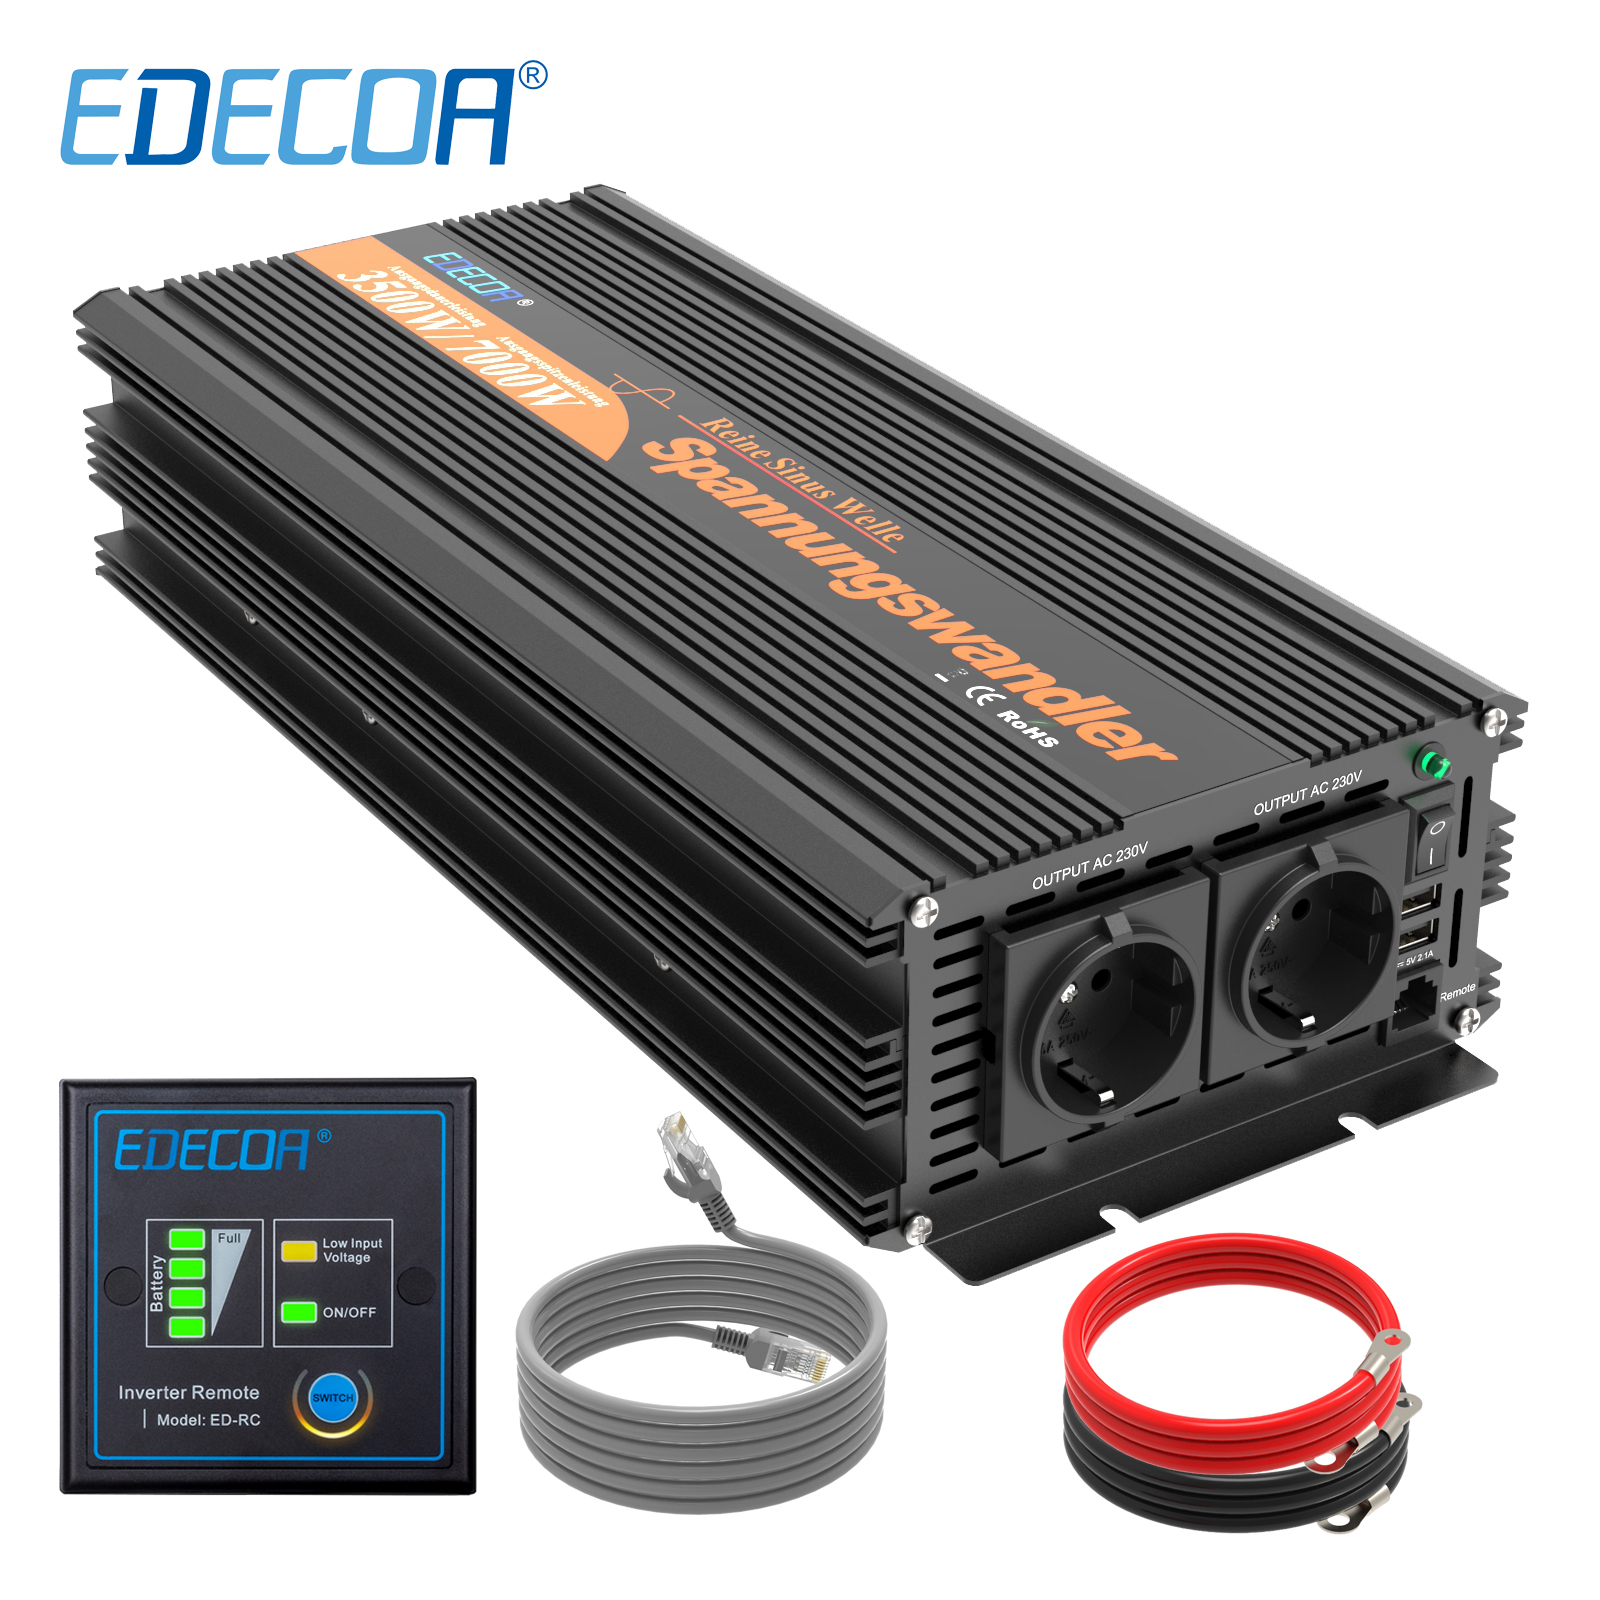 EDECOA 3500W <font><b>7000W</b></font> <font><b>power</b></font> <font><b>inverter</b></font> DC <font><b>12V</b></font> AC 220V 230V 240V <font><b>pure</b></font> <font><b>sine</b></font> <font><b>wave</b></font> with 5V 2.1A USB and remote controller image